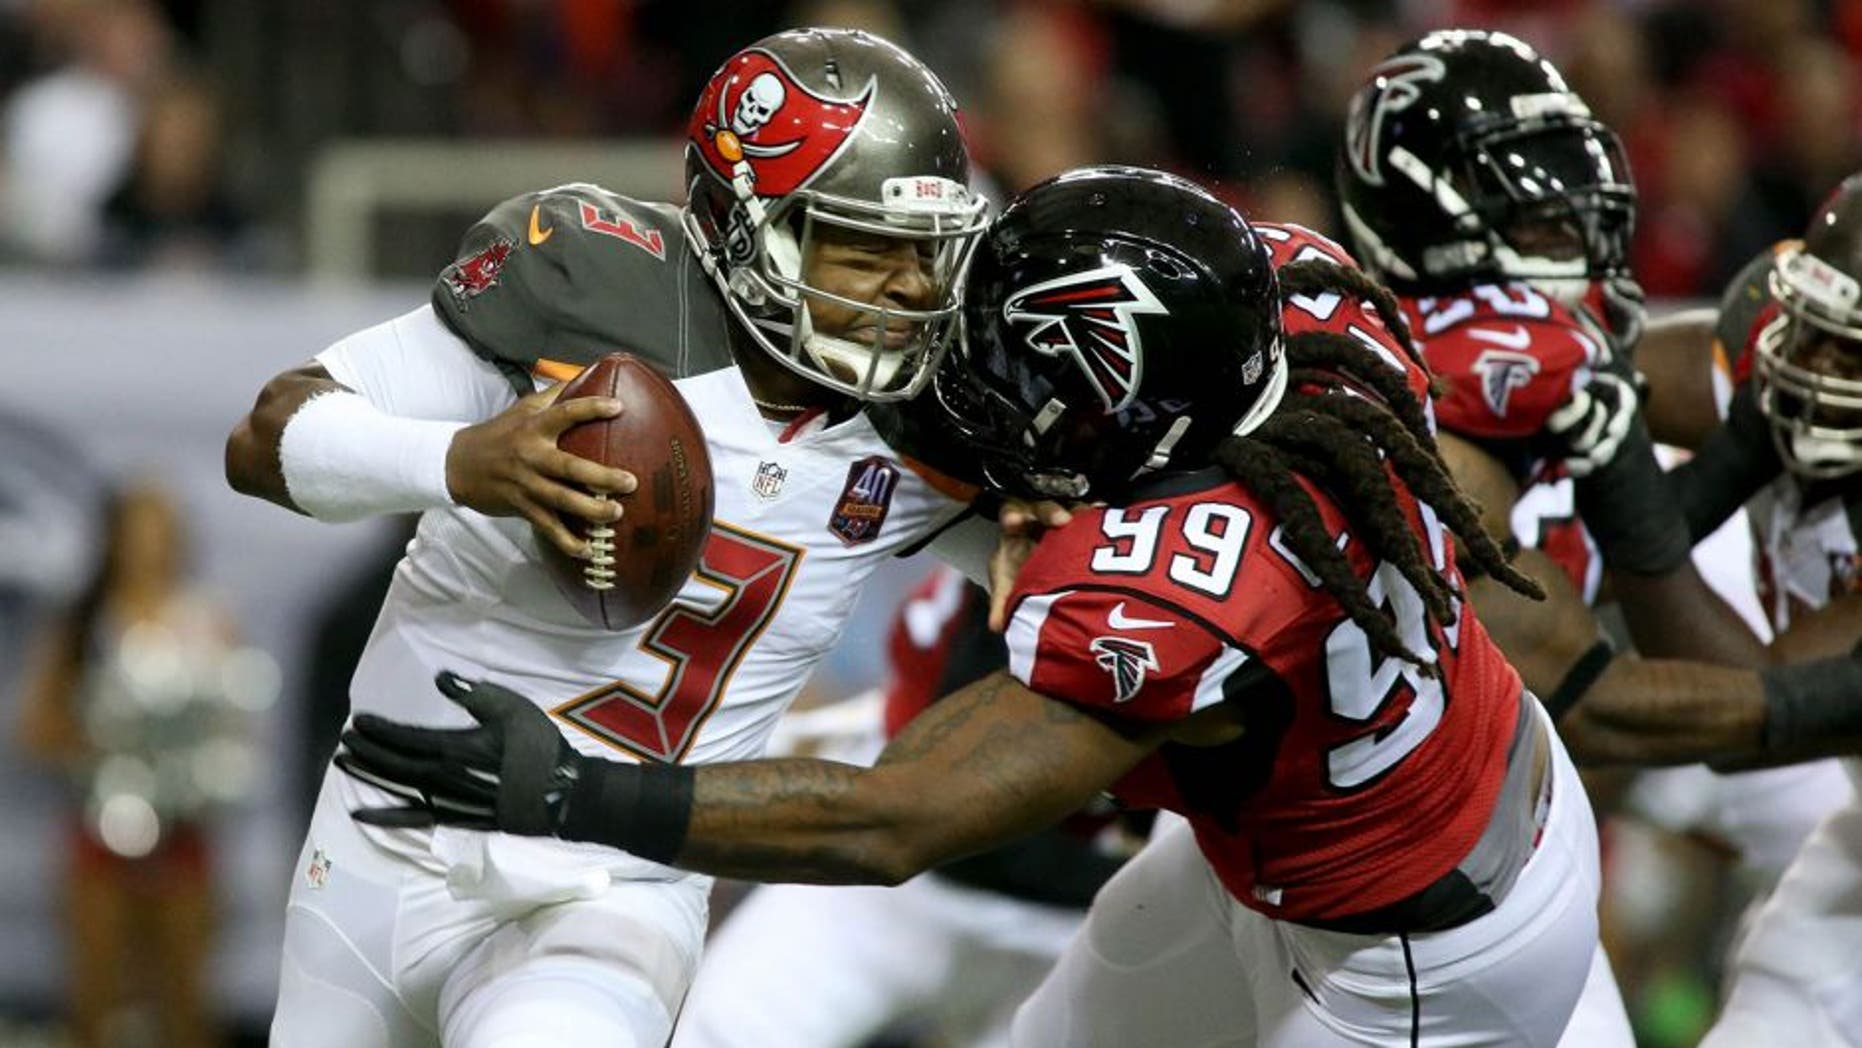 Nov 1, 2015; Atlanta, GA, USA; Tampa Bay Buccaneers quarterback Jameis Winston (3) is hit by Atlanta Falcons defensive end Adrian Clayborn (99) but prevents the tackle from Clayborn in the first quarter of their game at the Georgia Dome. Mandatory Credit: Jason Getz-USA TODAY Sports